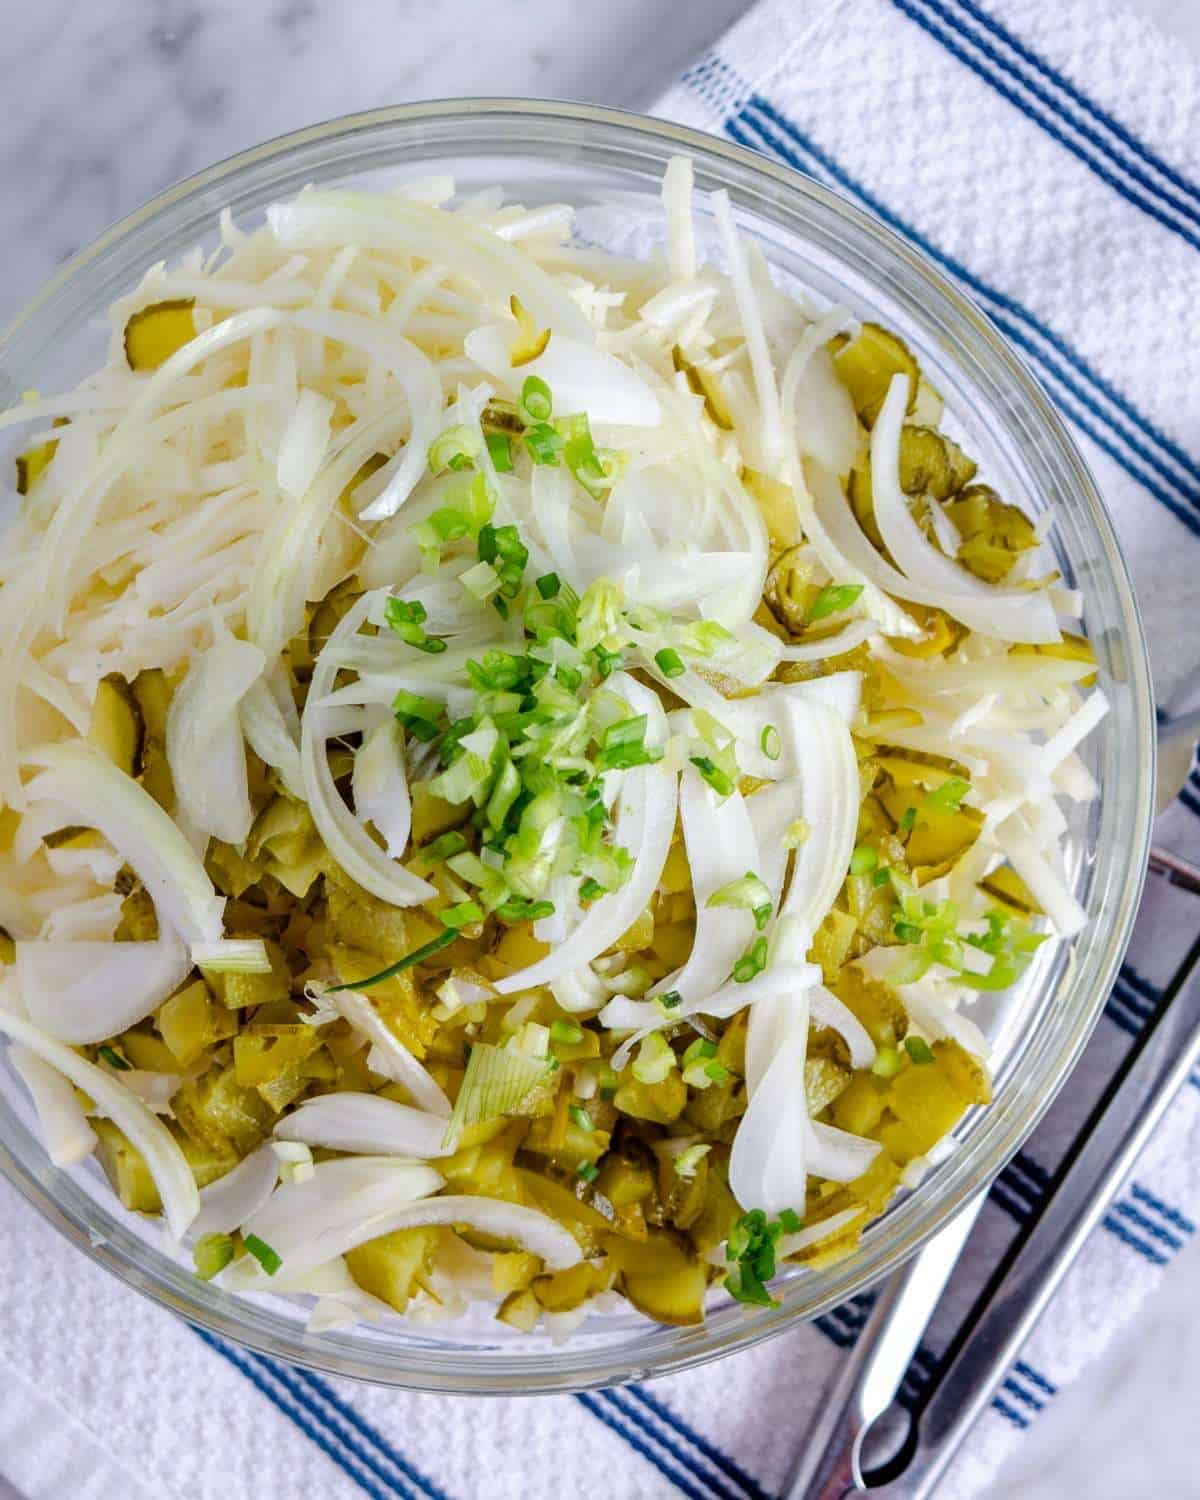 Low carb coleslaw with dill pickles, and onions in a bowl